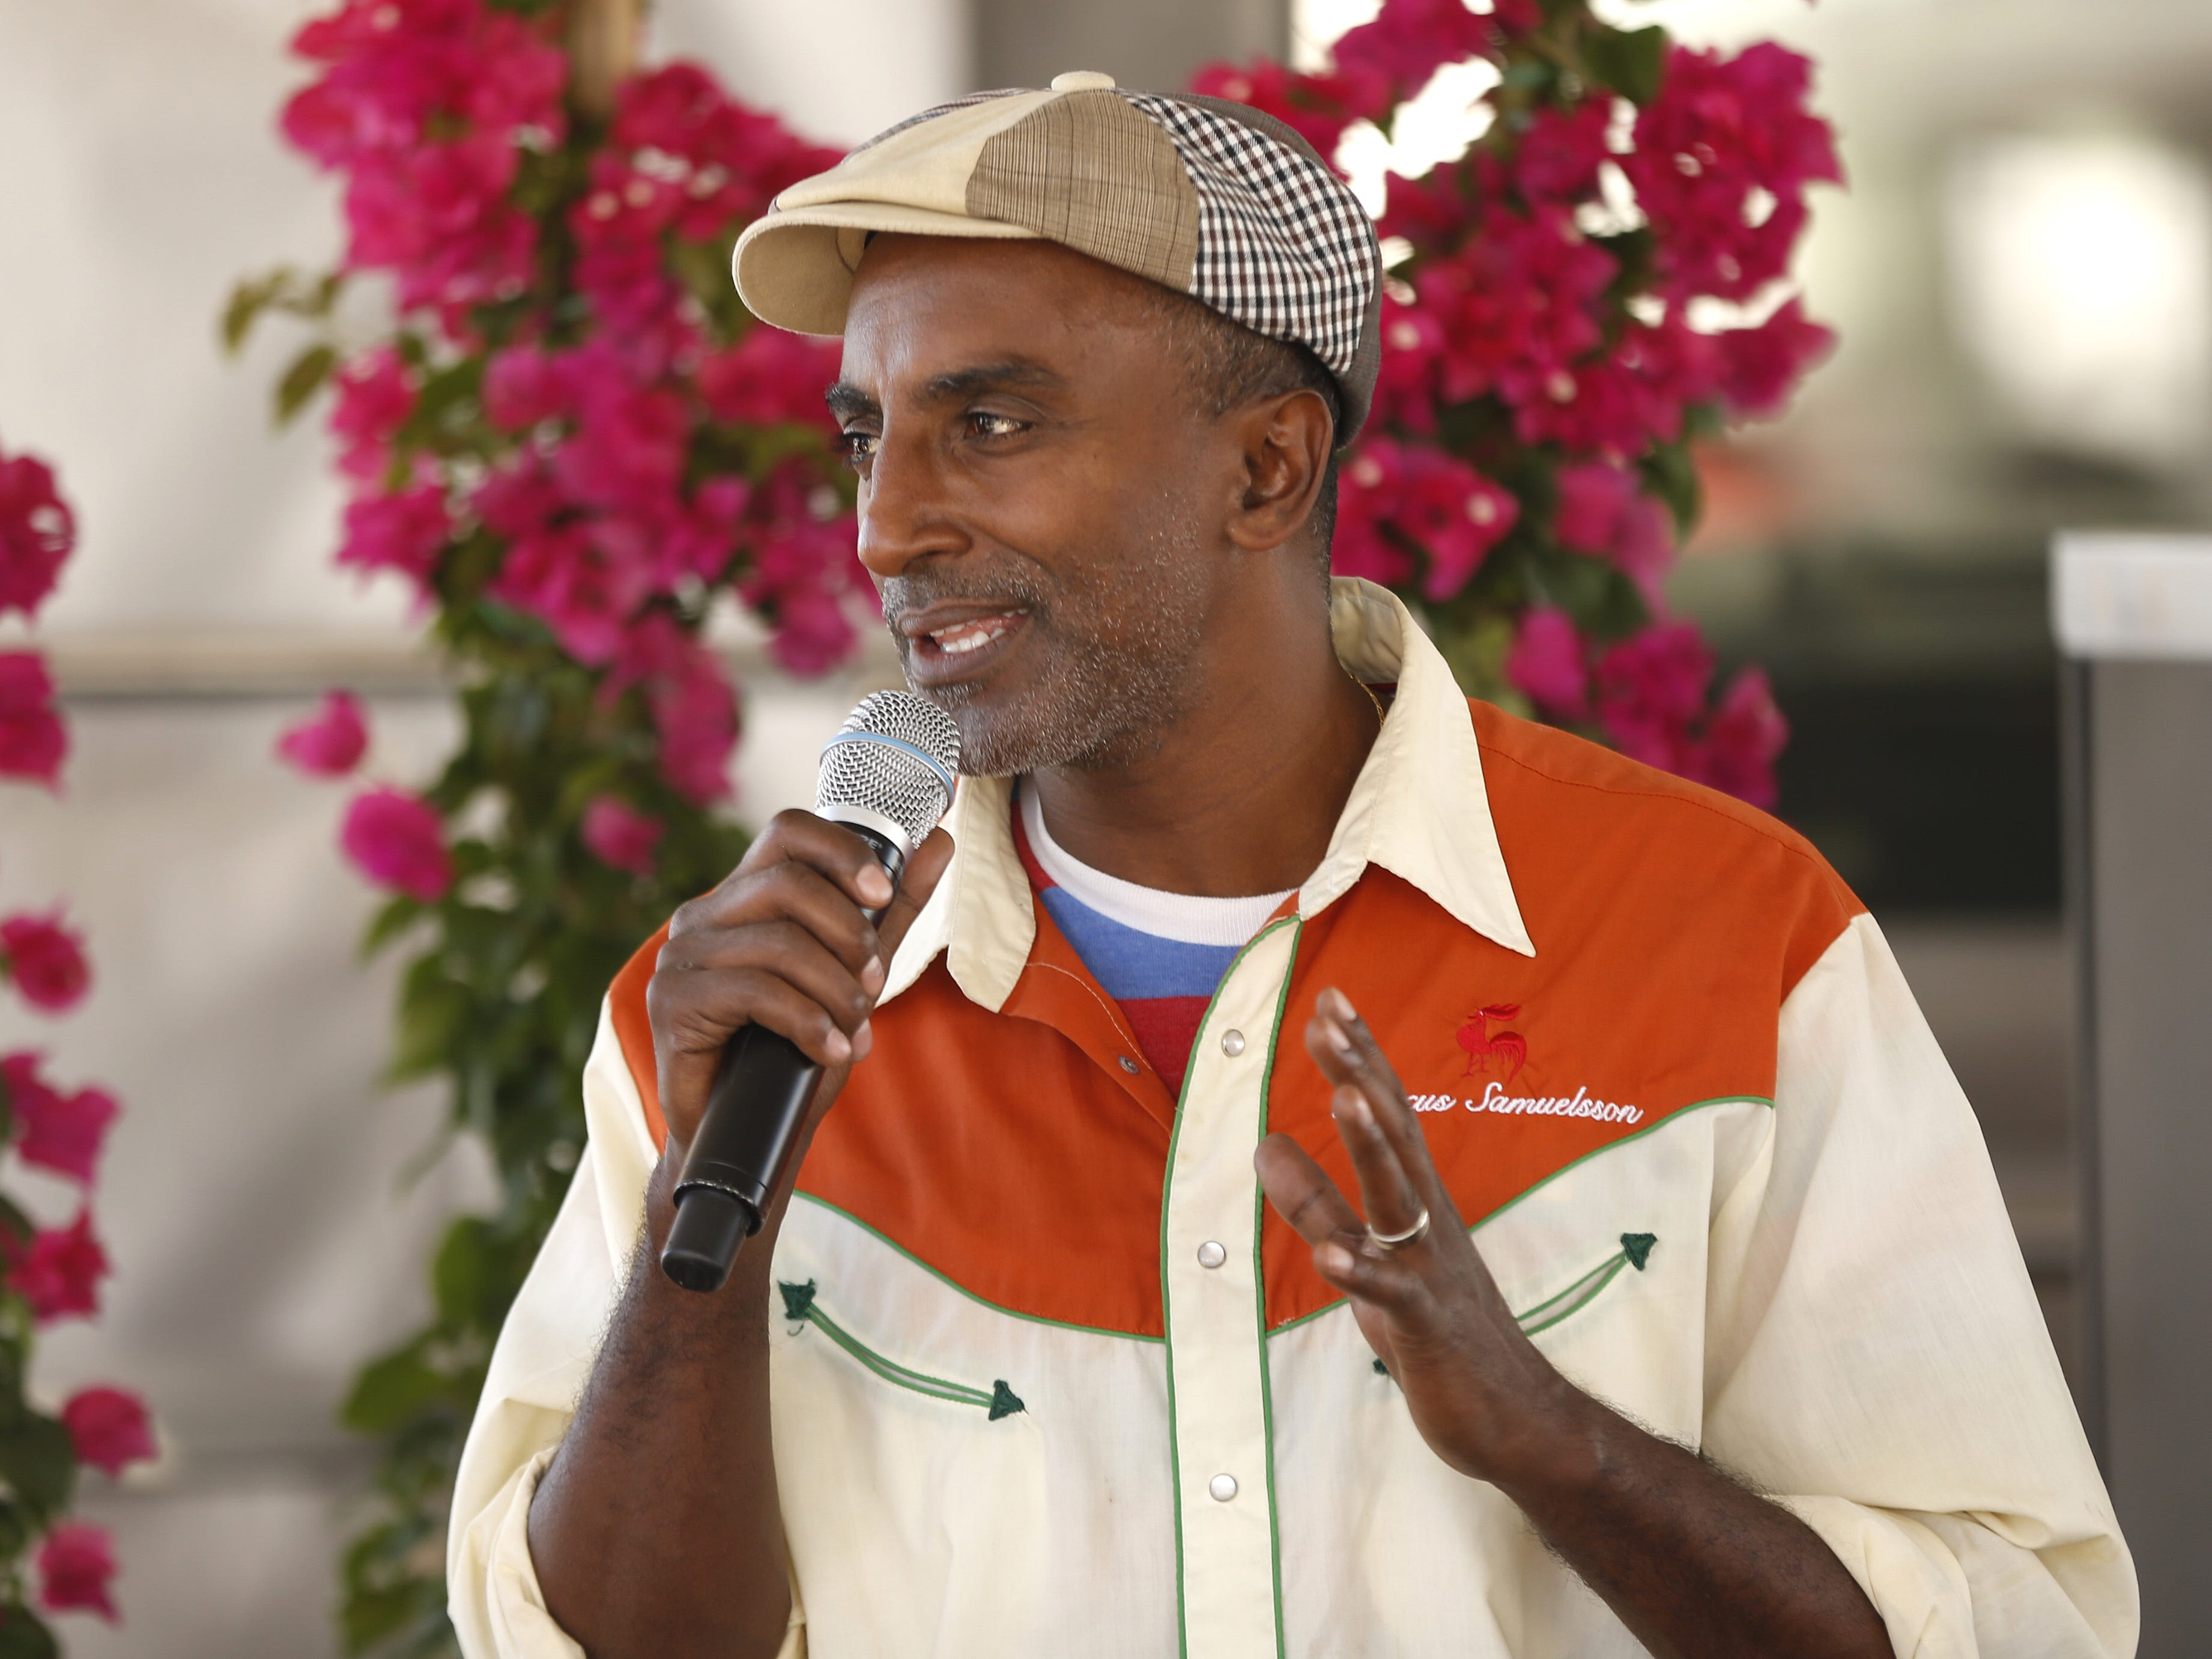 Chef Marcus Samuelsson talks with VIP guests during the azcentral Wine & Food Experience at WestWorld of Scottsdale, Ariz. on Nov. 3, 2018.